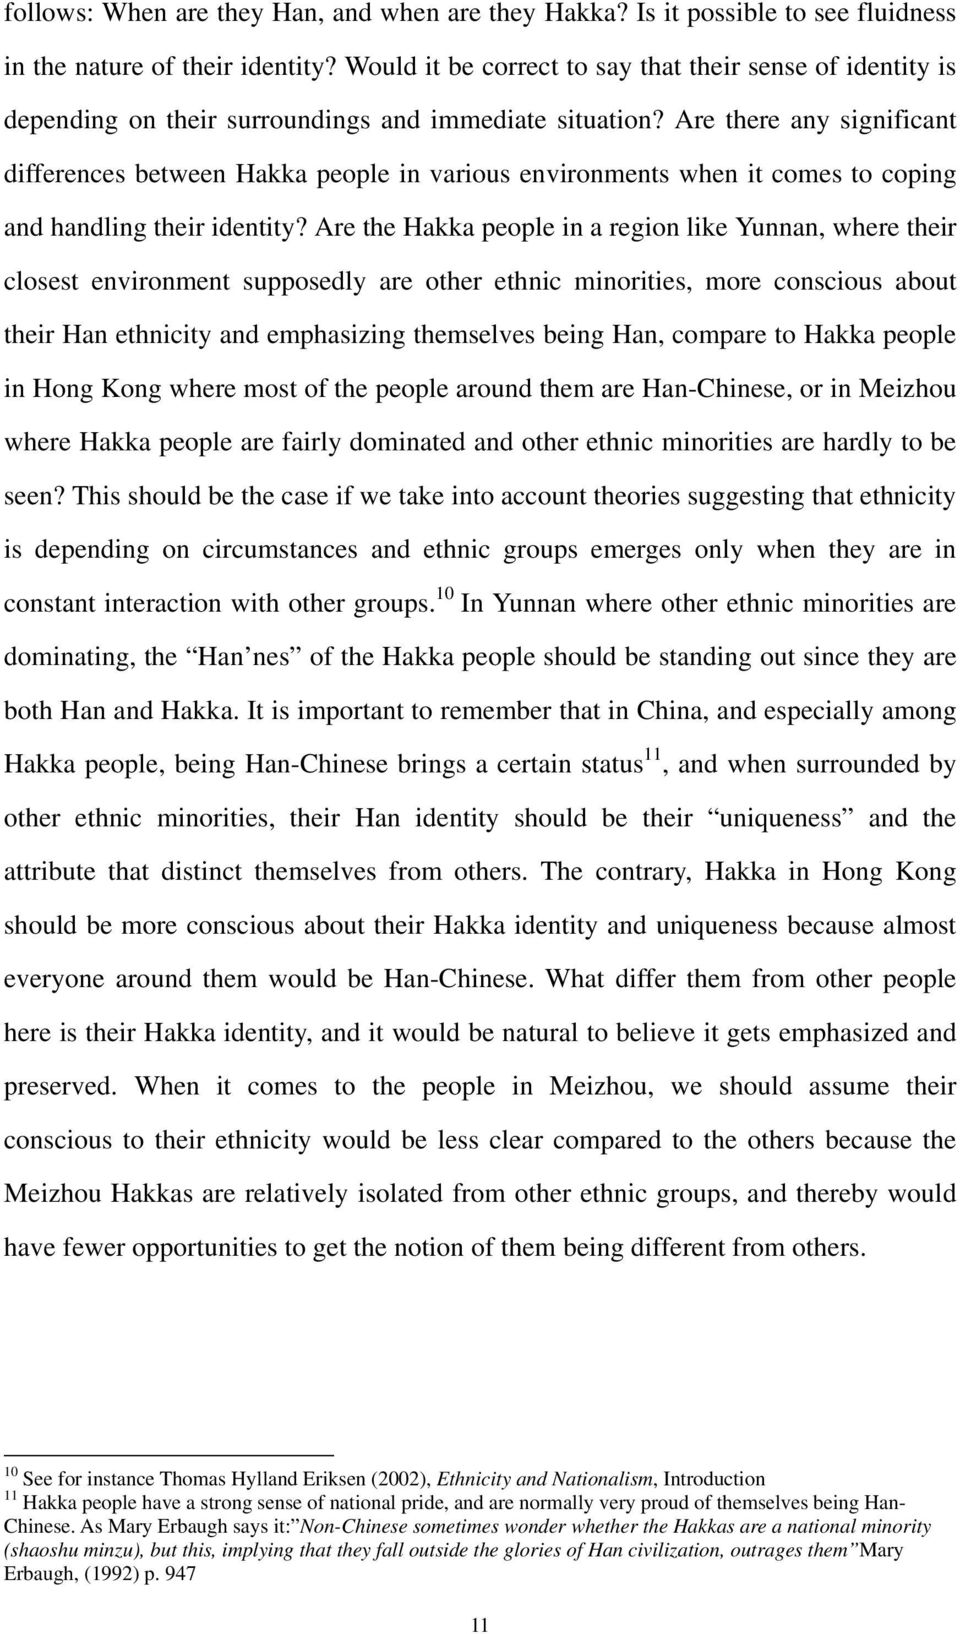 Are there any significant differences between Hakka people in various environments when it comes to coping and handling their identity?